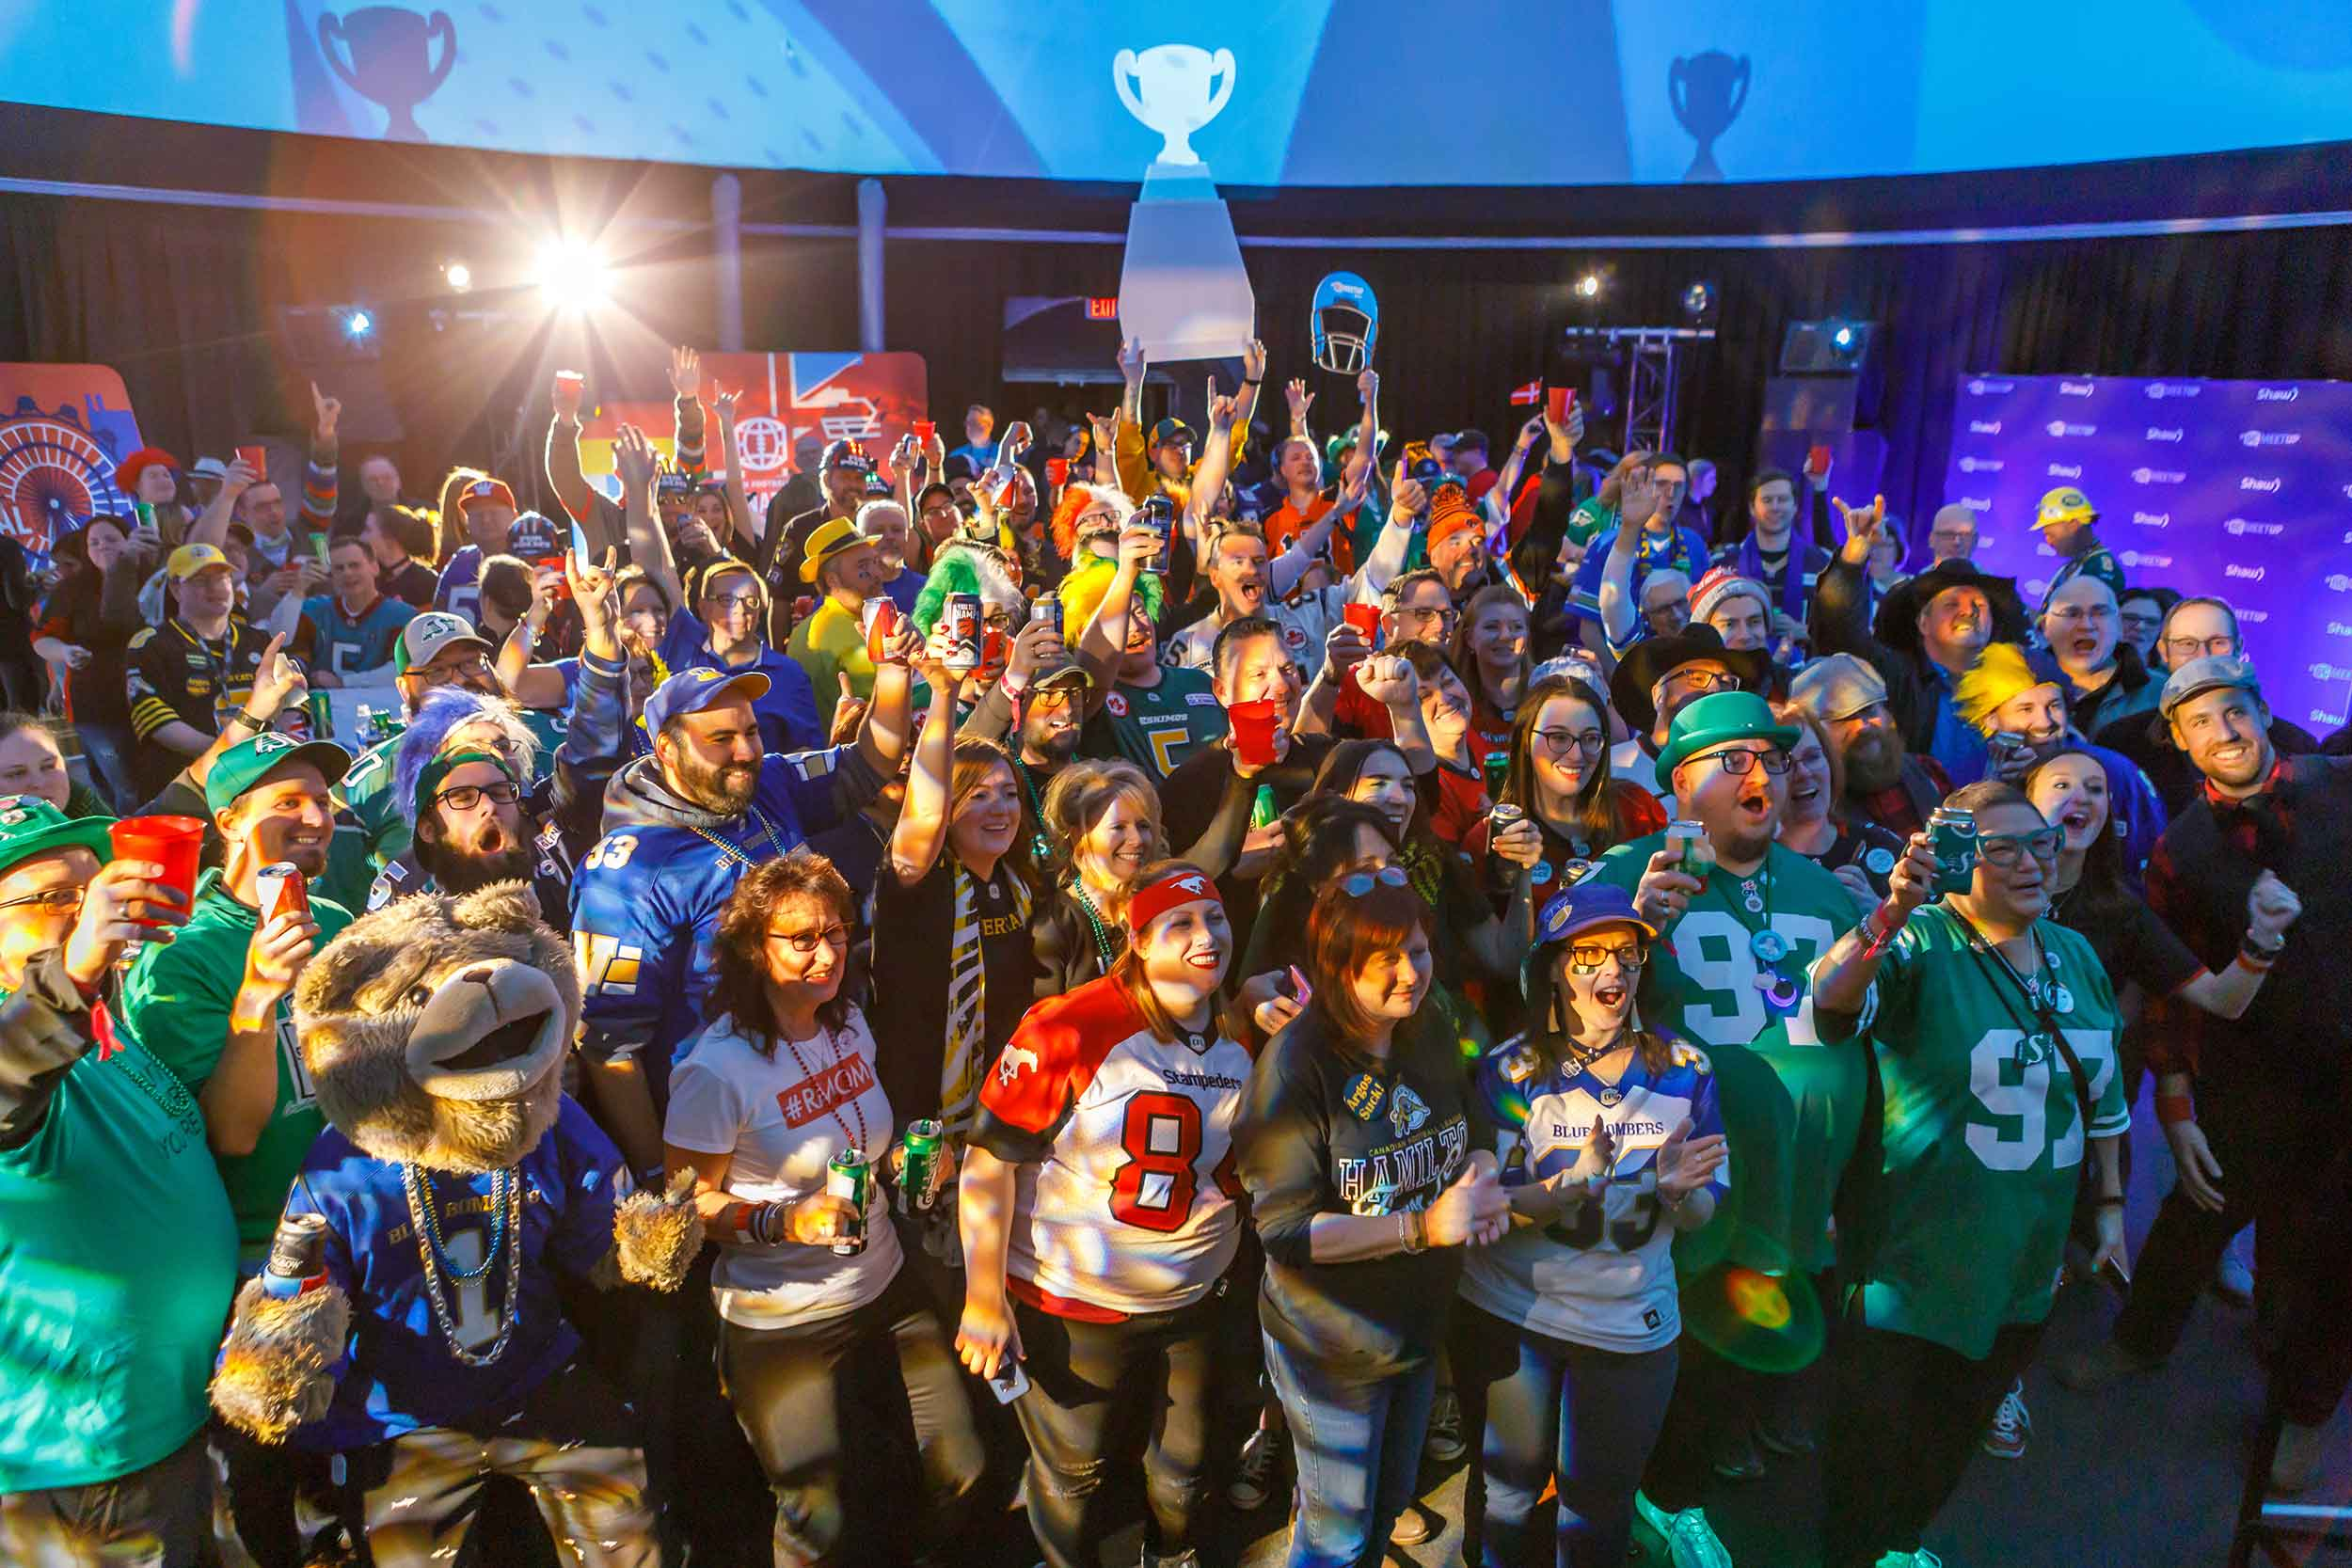 Crowd dressed in assorted jerseys watching a screen